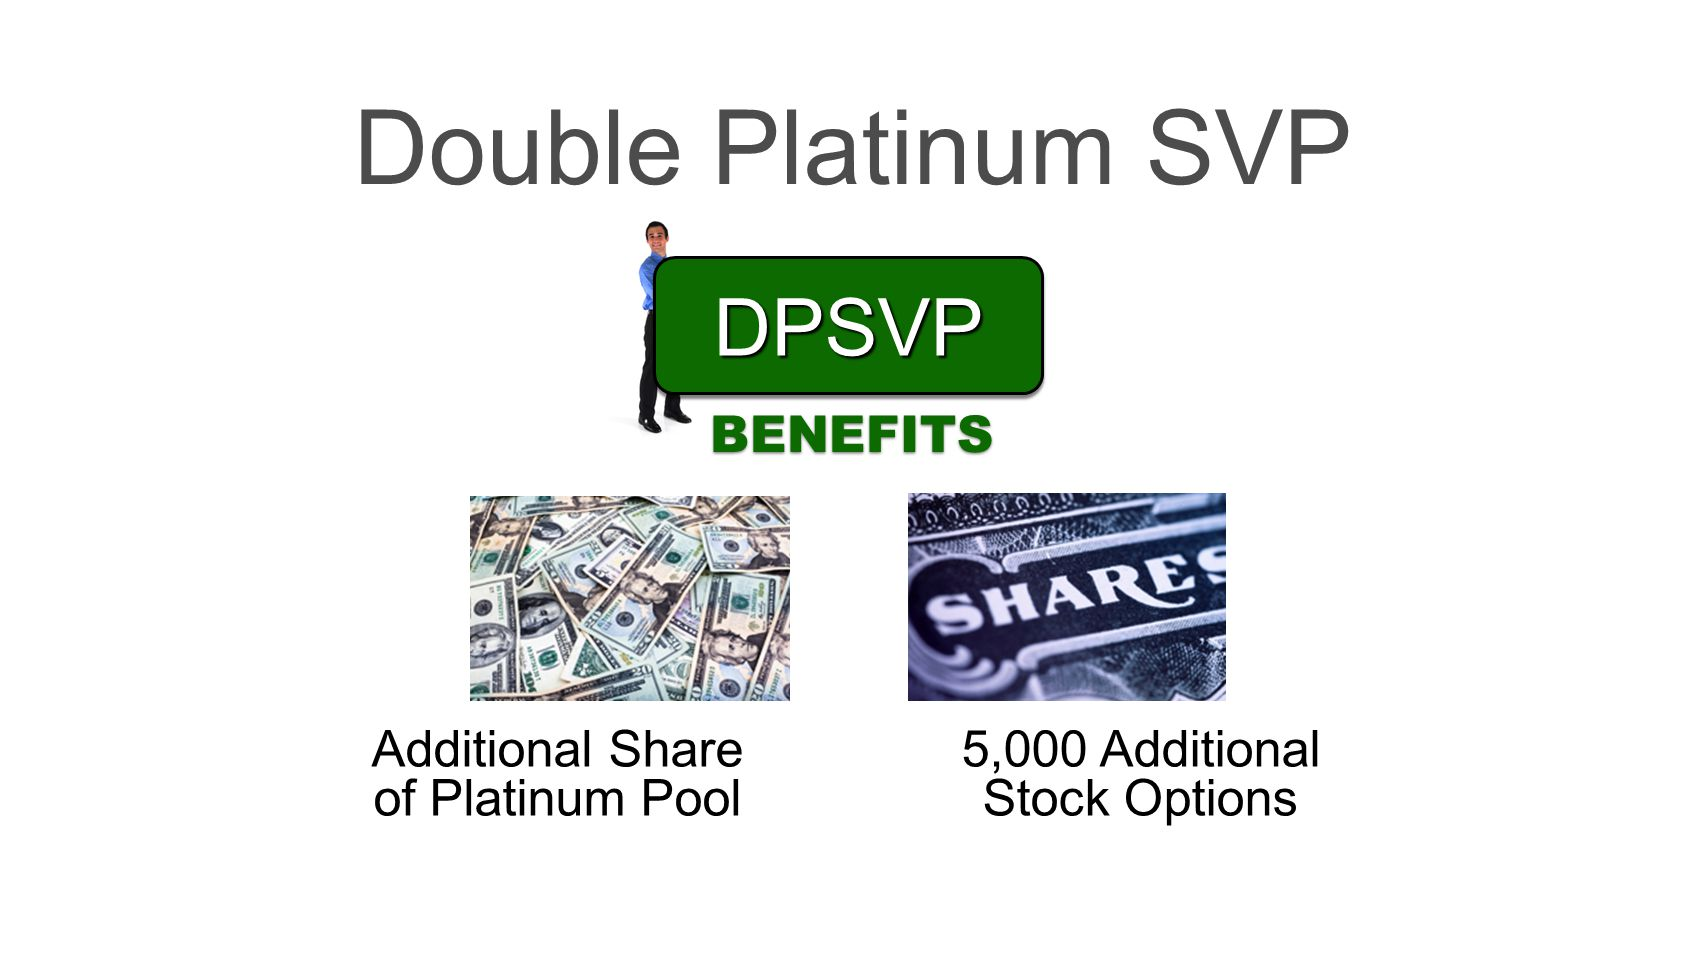 Double Platinum SVP DPSVP BENEFITS Additional Share of Platinum Pool